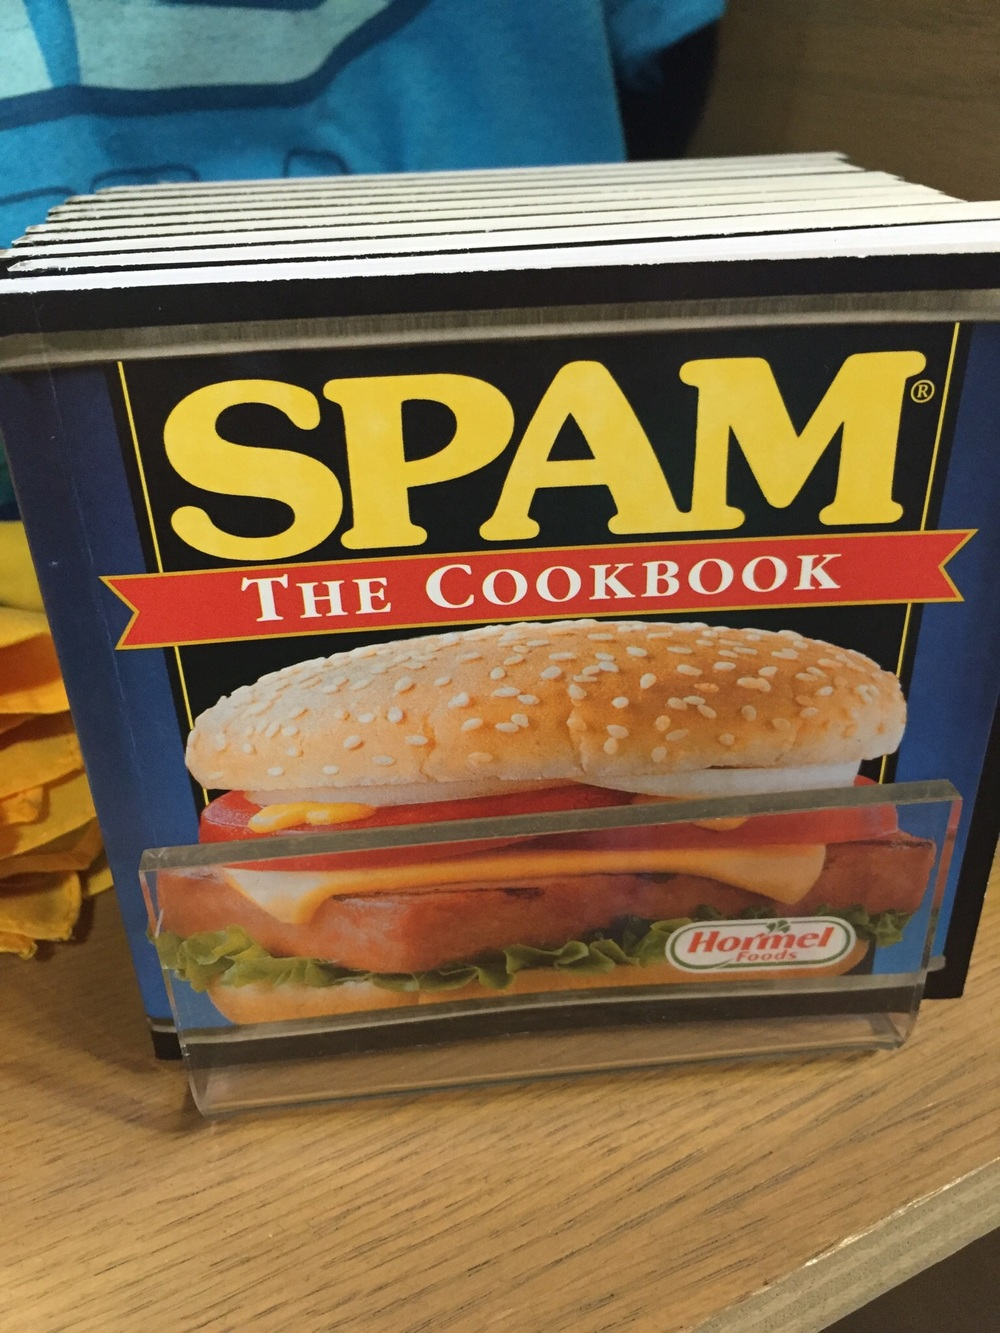 For some reason the Hawaiians hve a real soft spot for SPAM